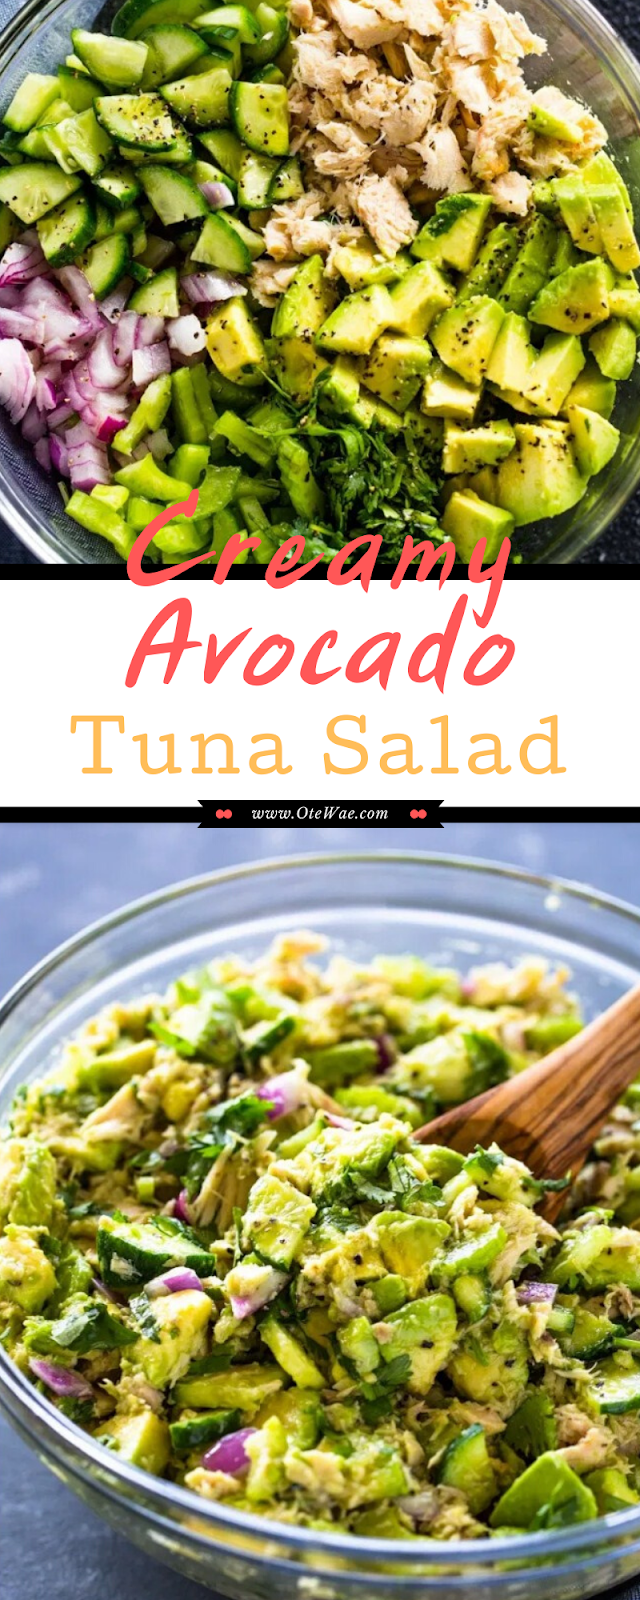 Creamy Avocado Tuna Salad